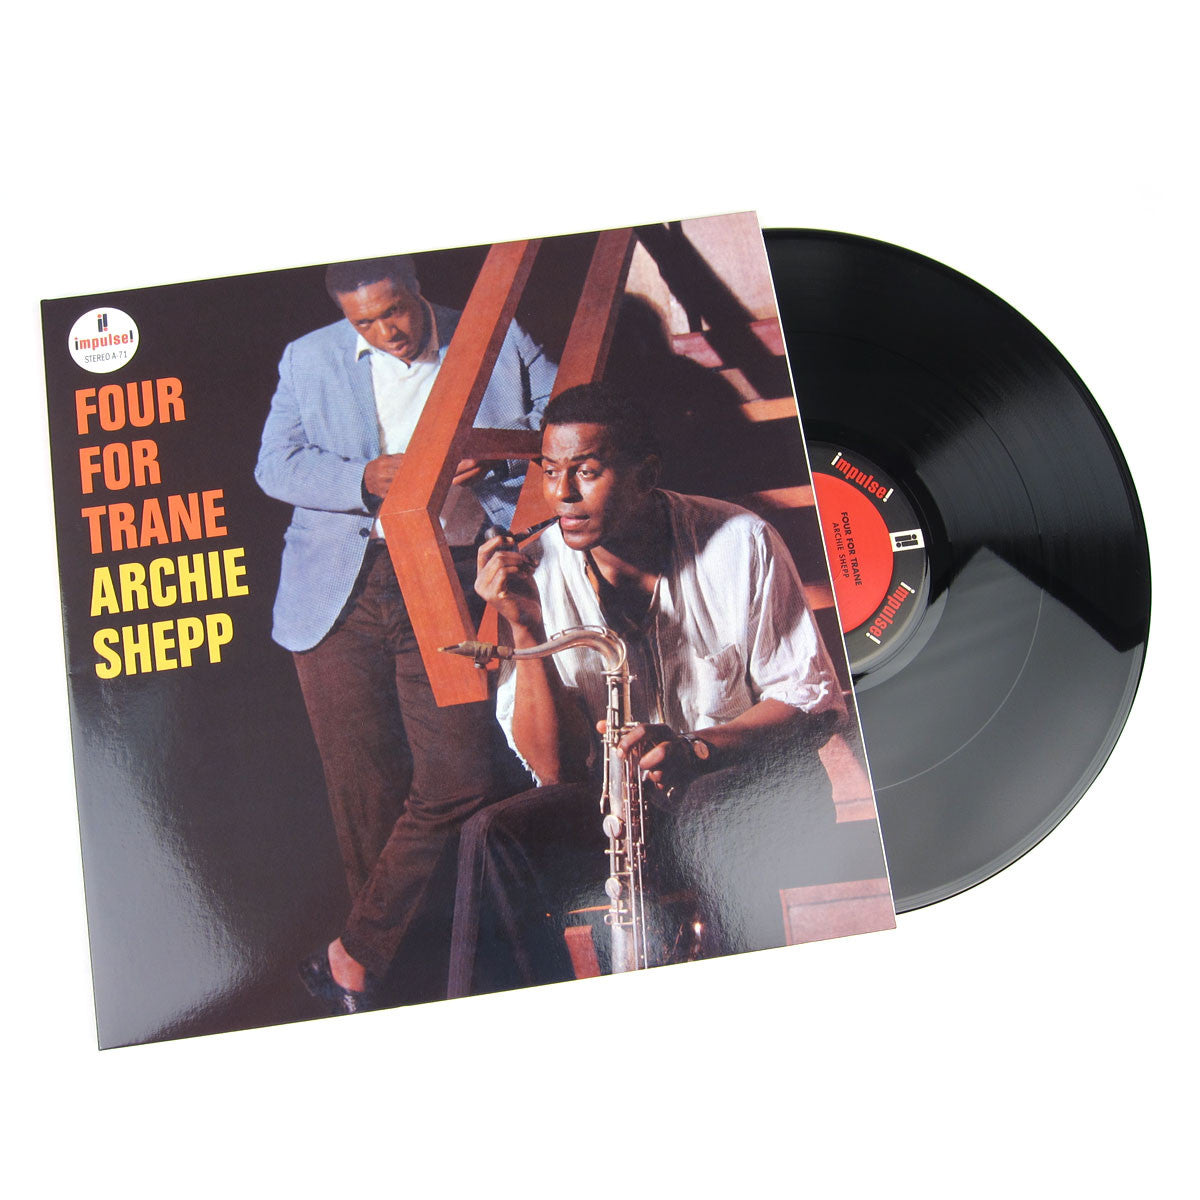 Archie Shepp: Four For Trane (180g) Vinyl LP